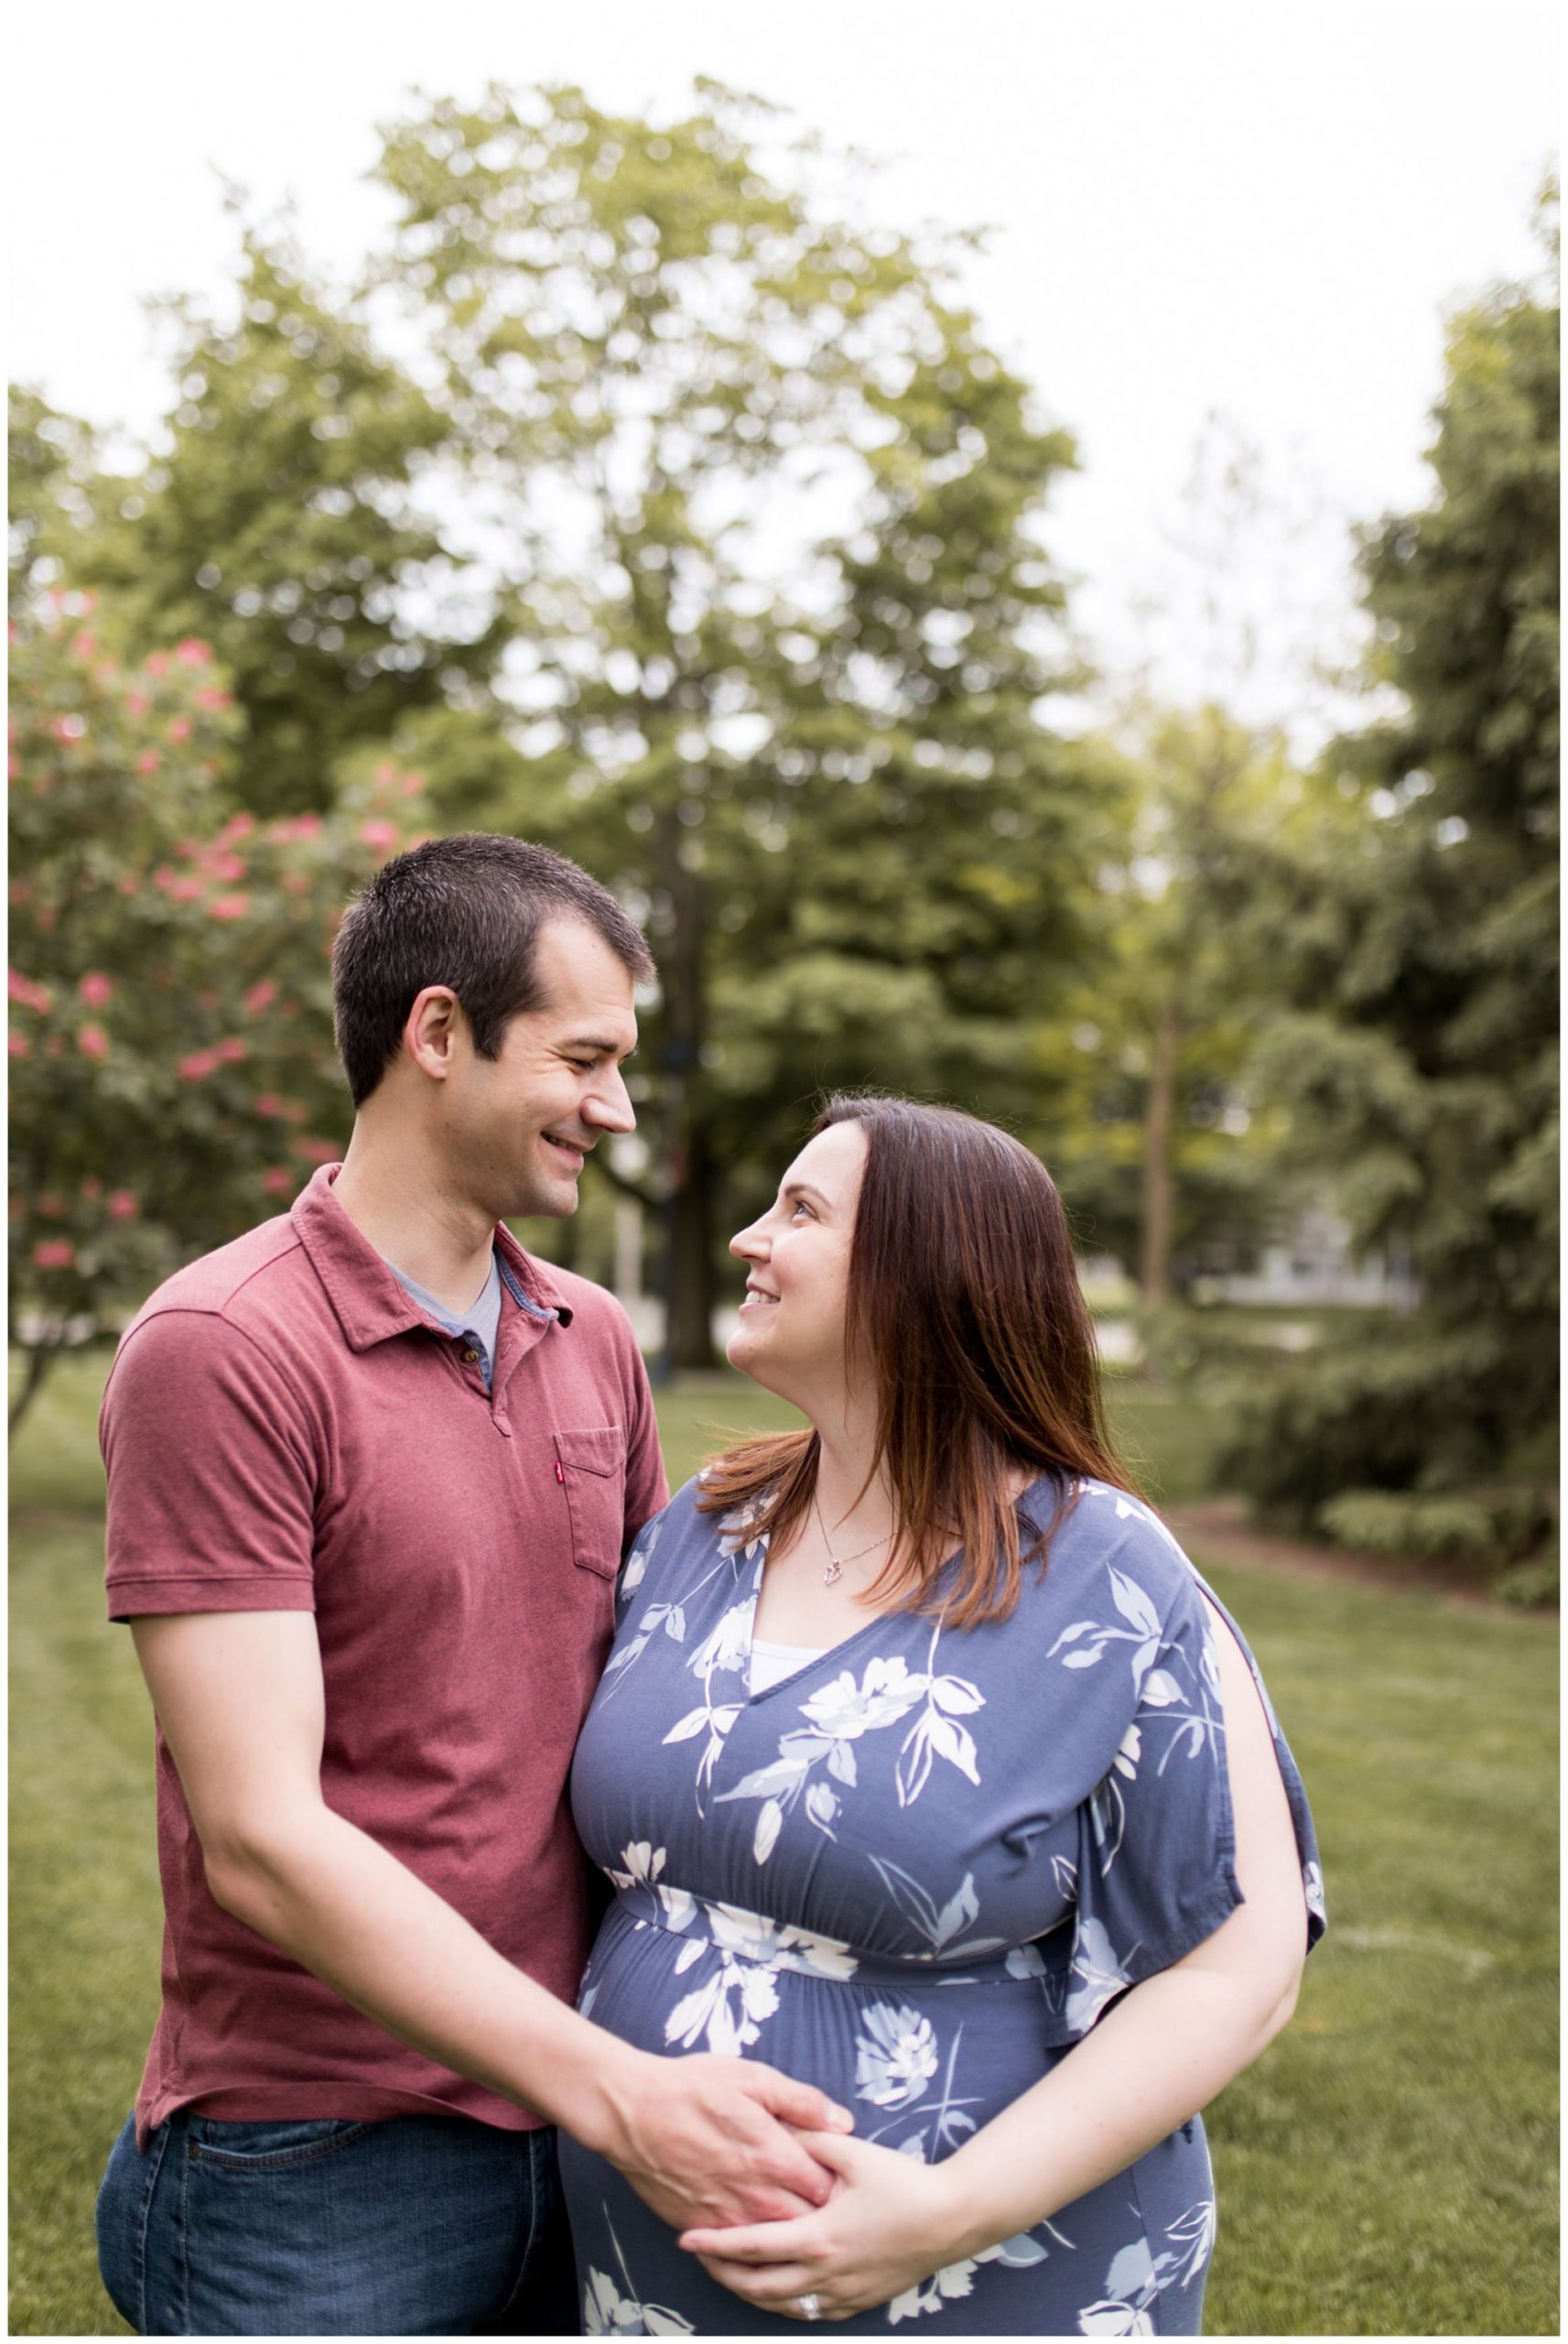 Muncie Indiana maternity session at Ball State University